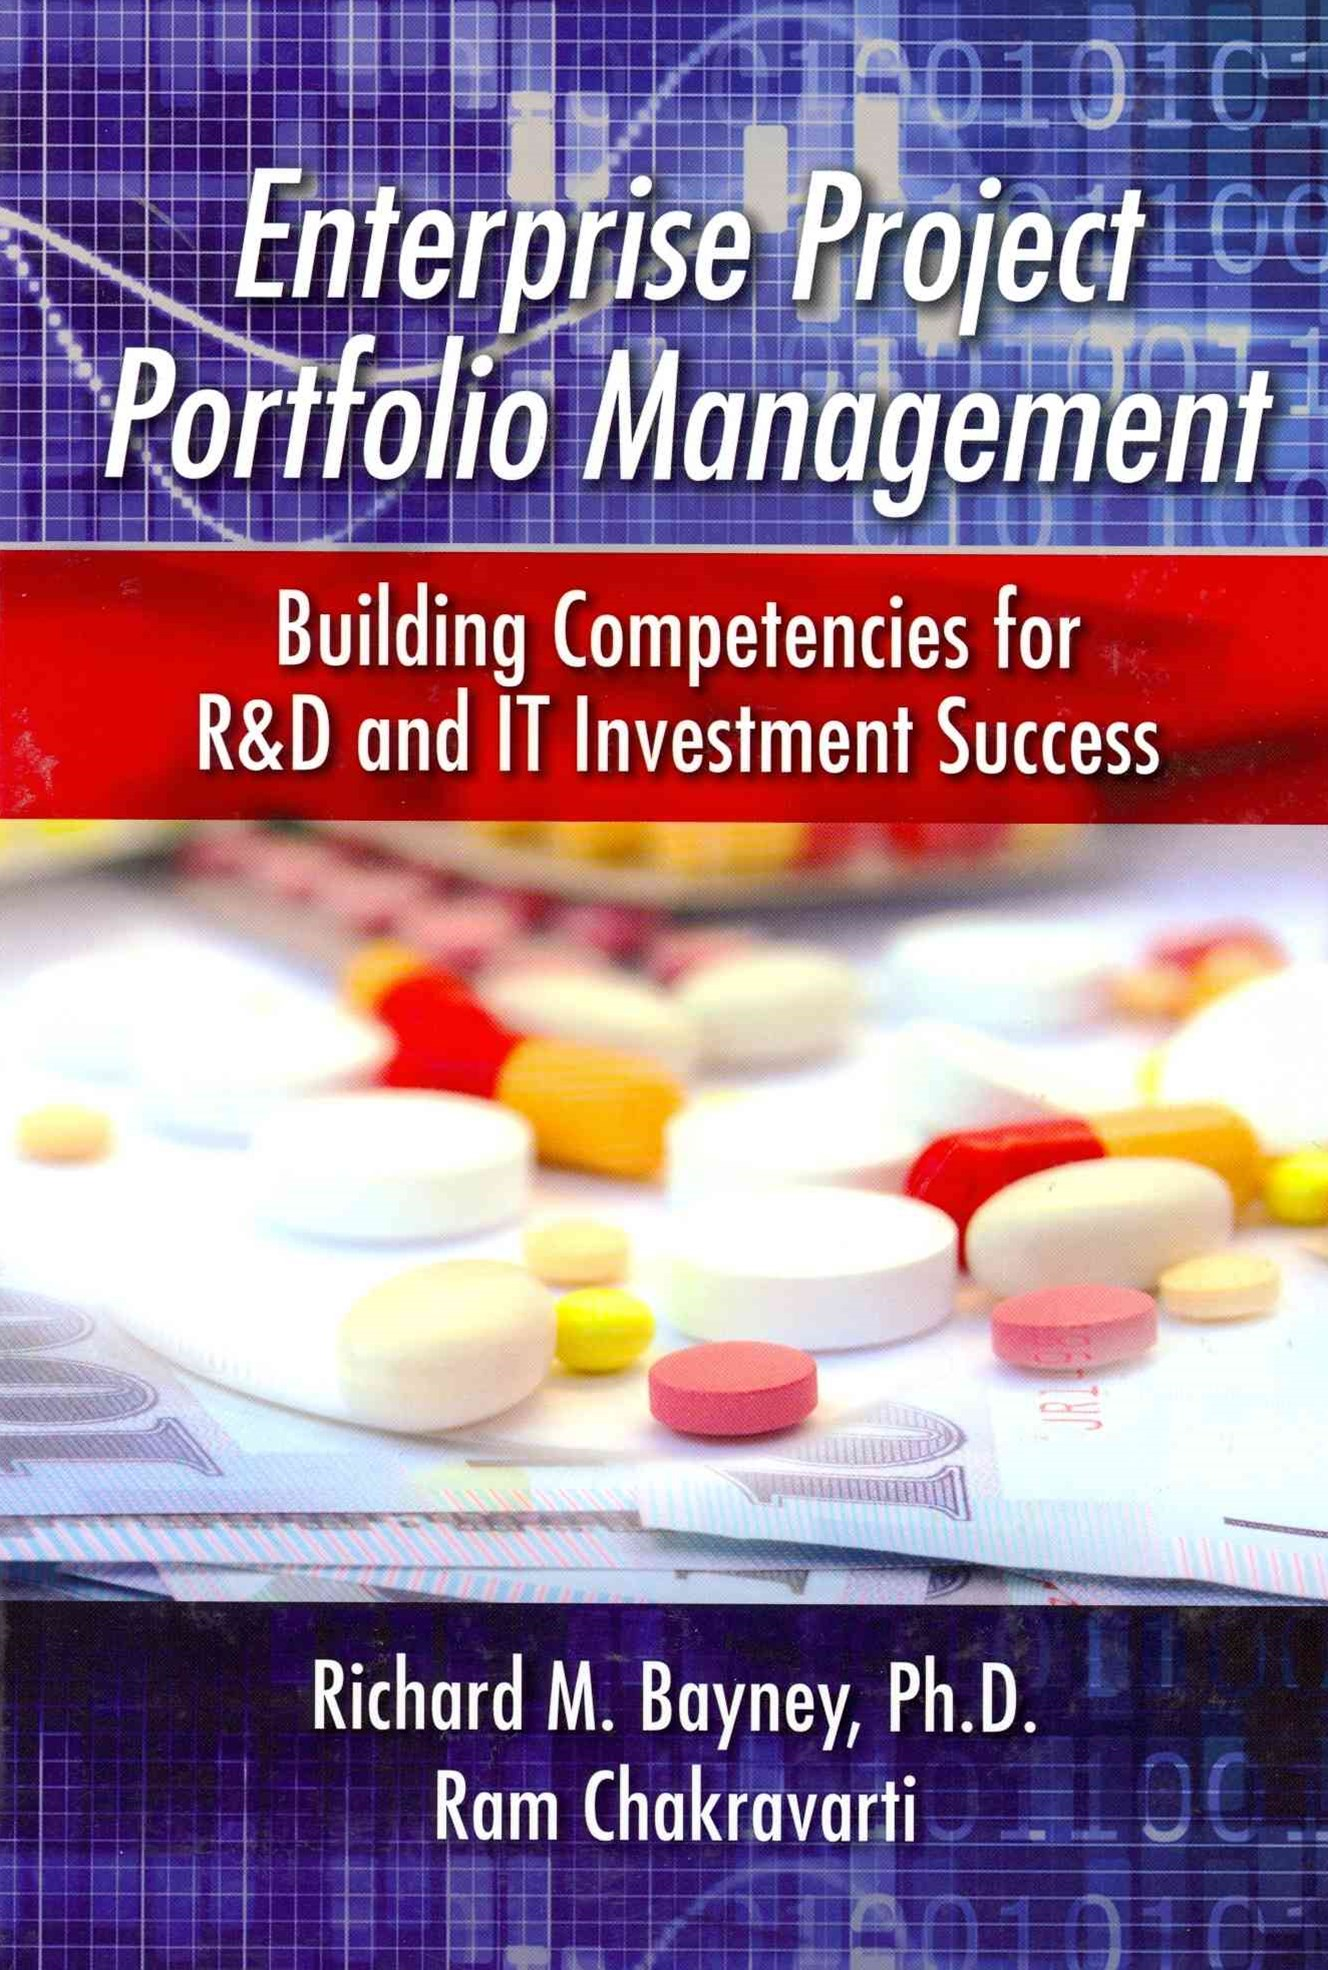 Enterprise Project Portfolio Management